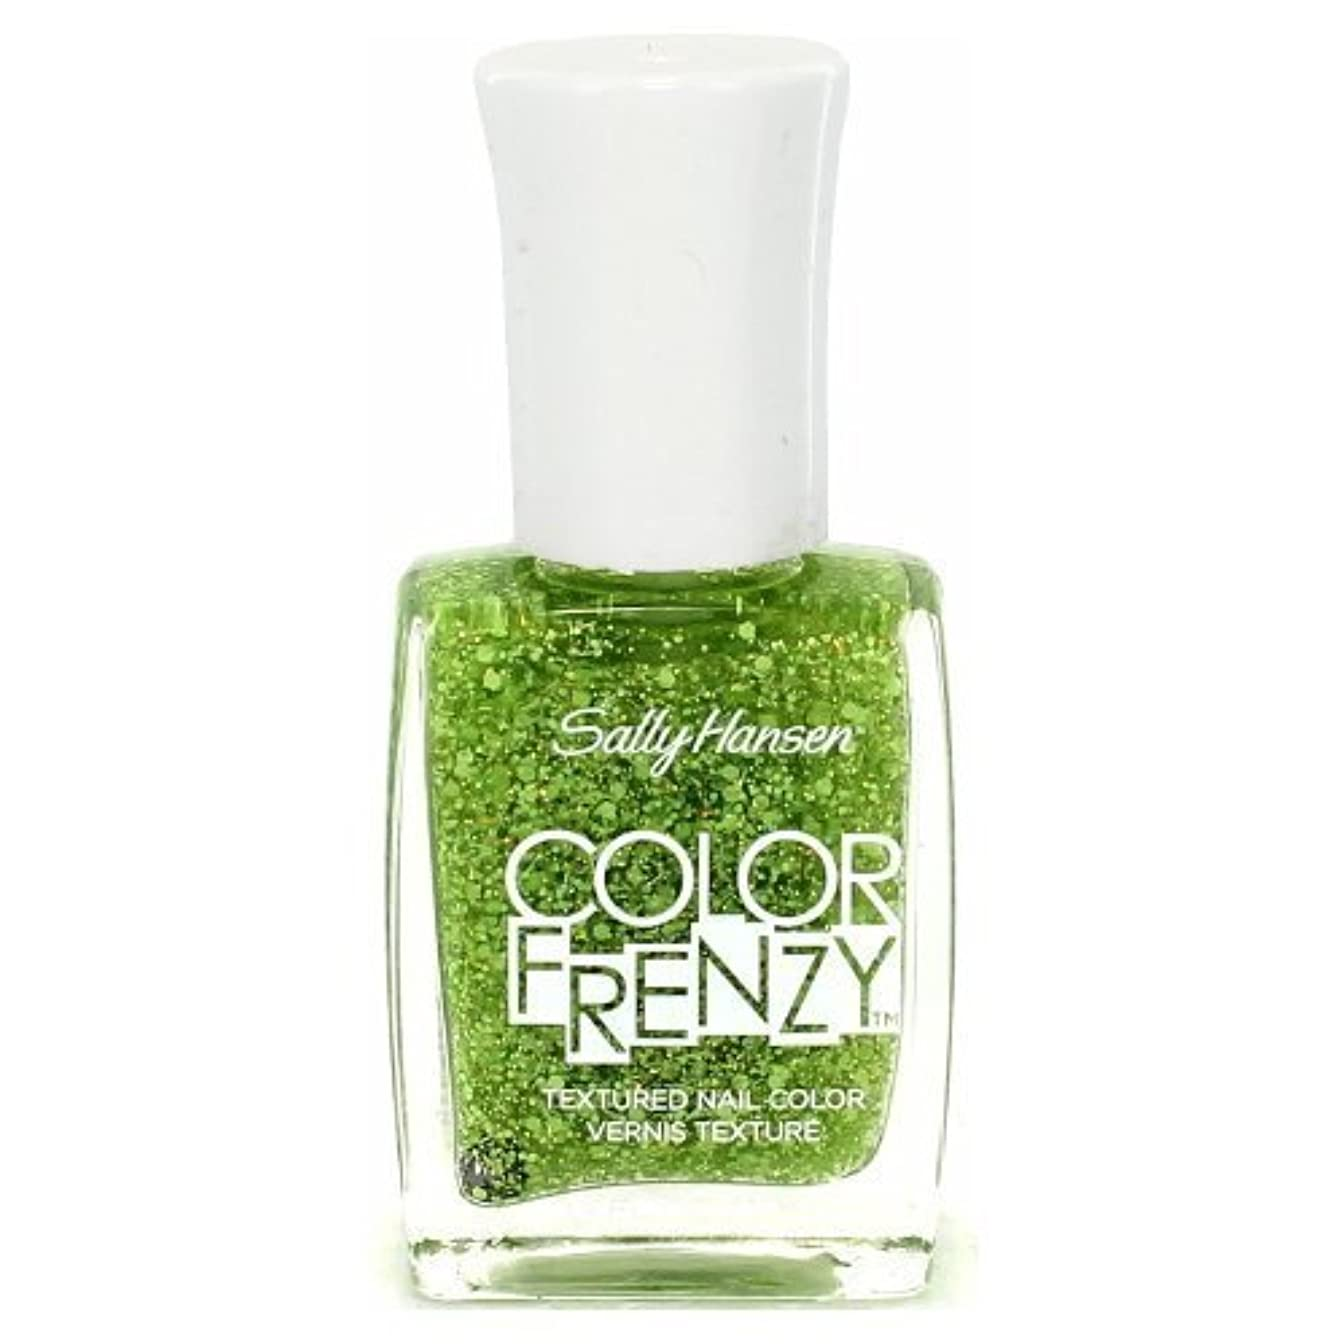 マサッチョ一杯明らかにするSALLY HANSEN Color Frenzy Textured Nail Color - Green Machine (並行輸入品)